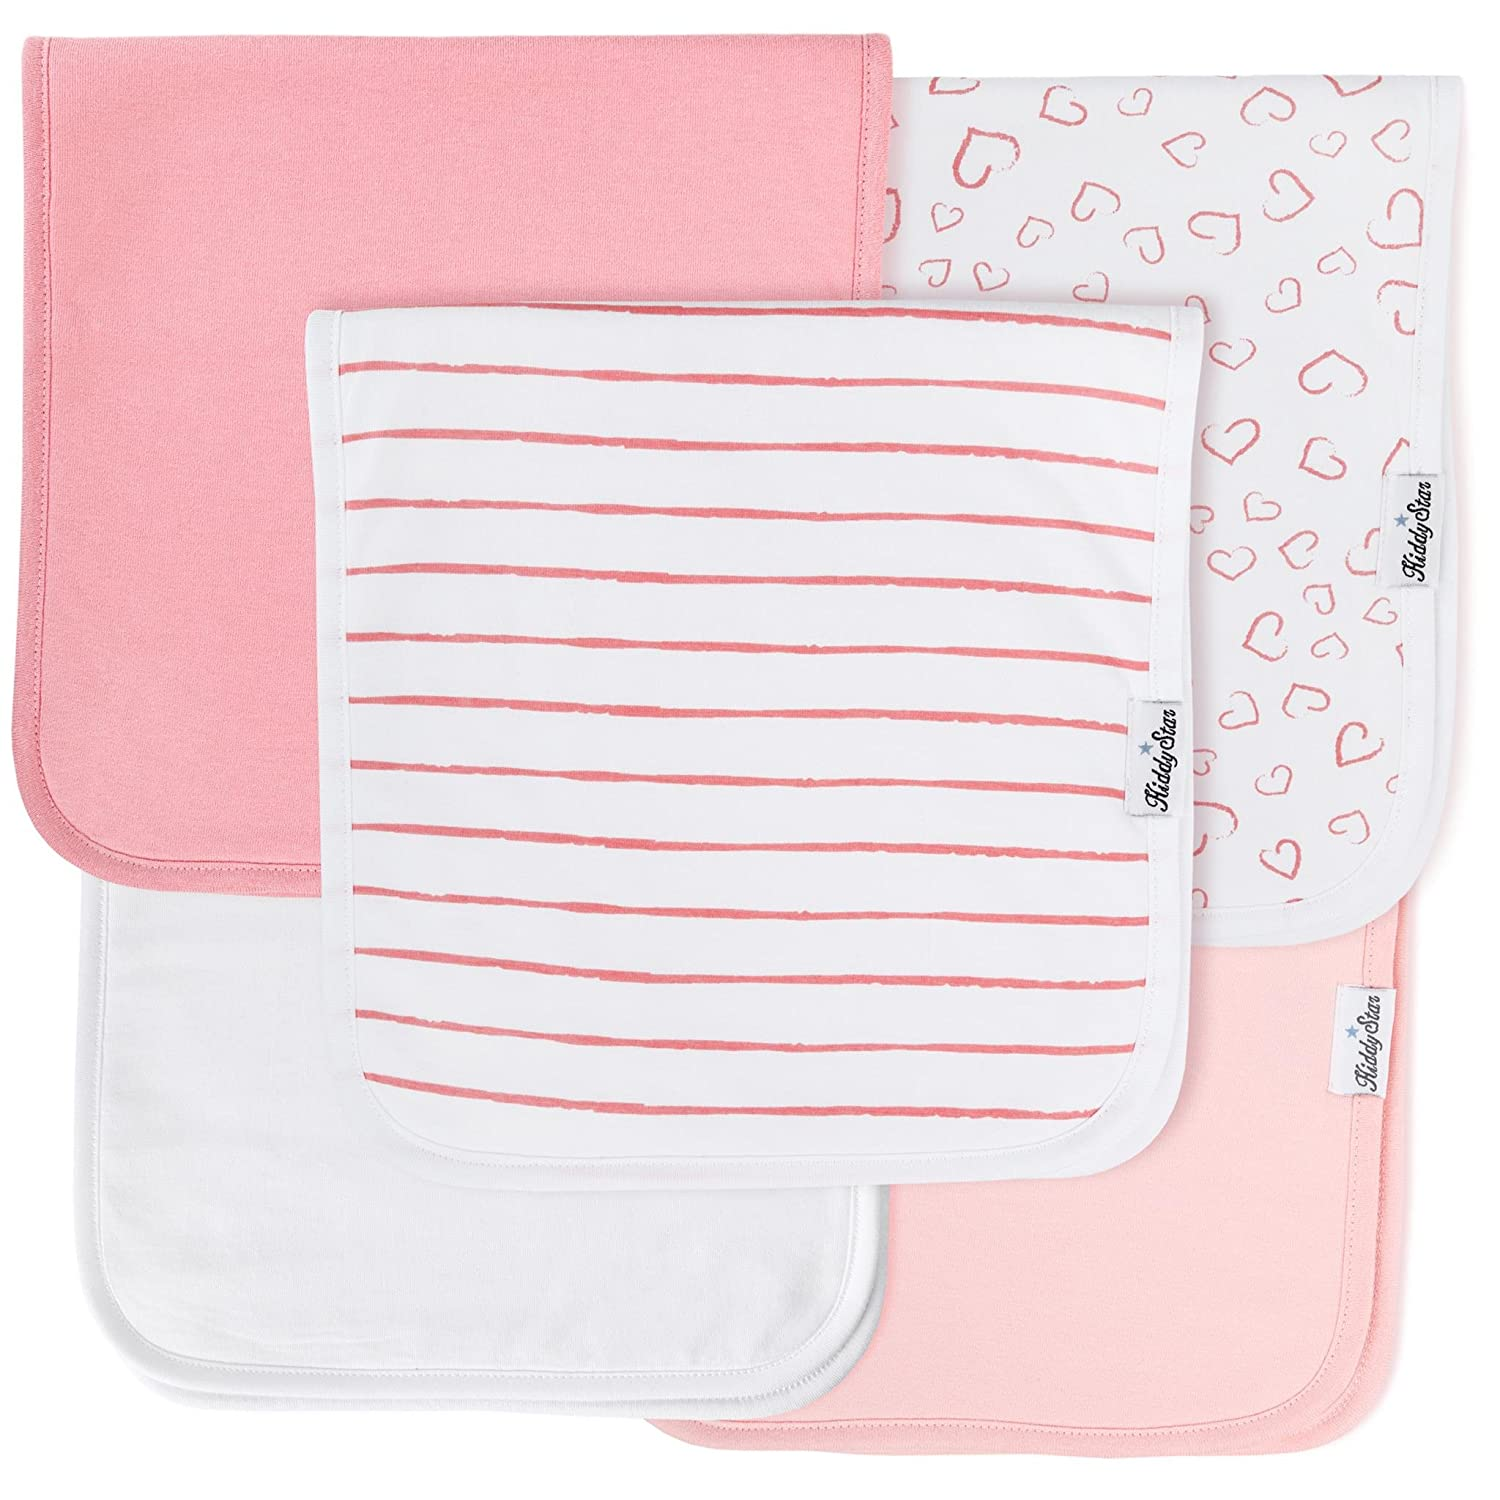 5-Pack Baby Burp Cloths for Girls, 100% Organic Cotton, Large 21